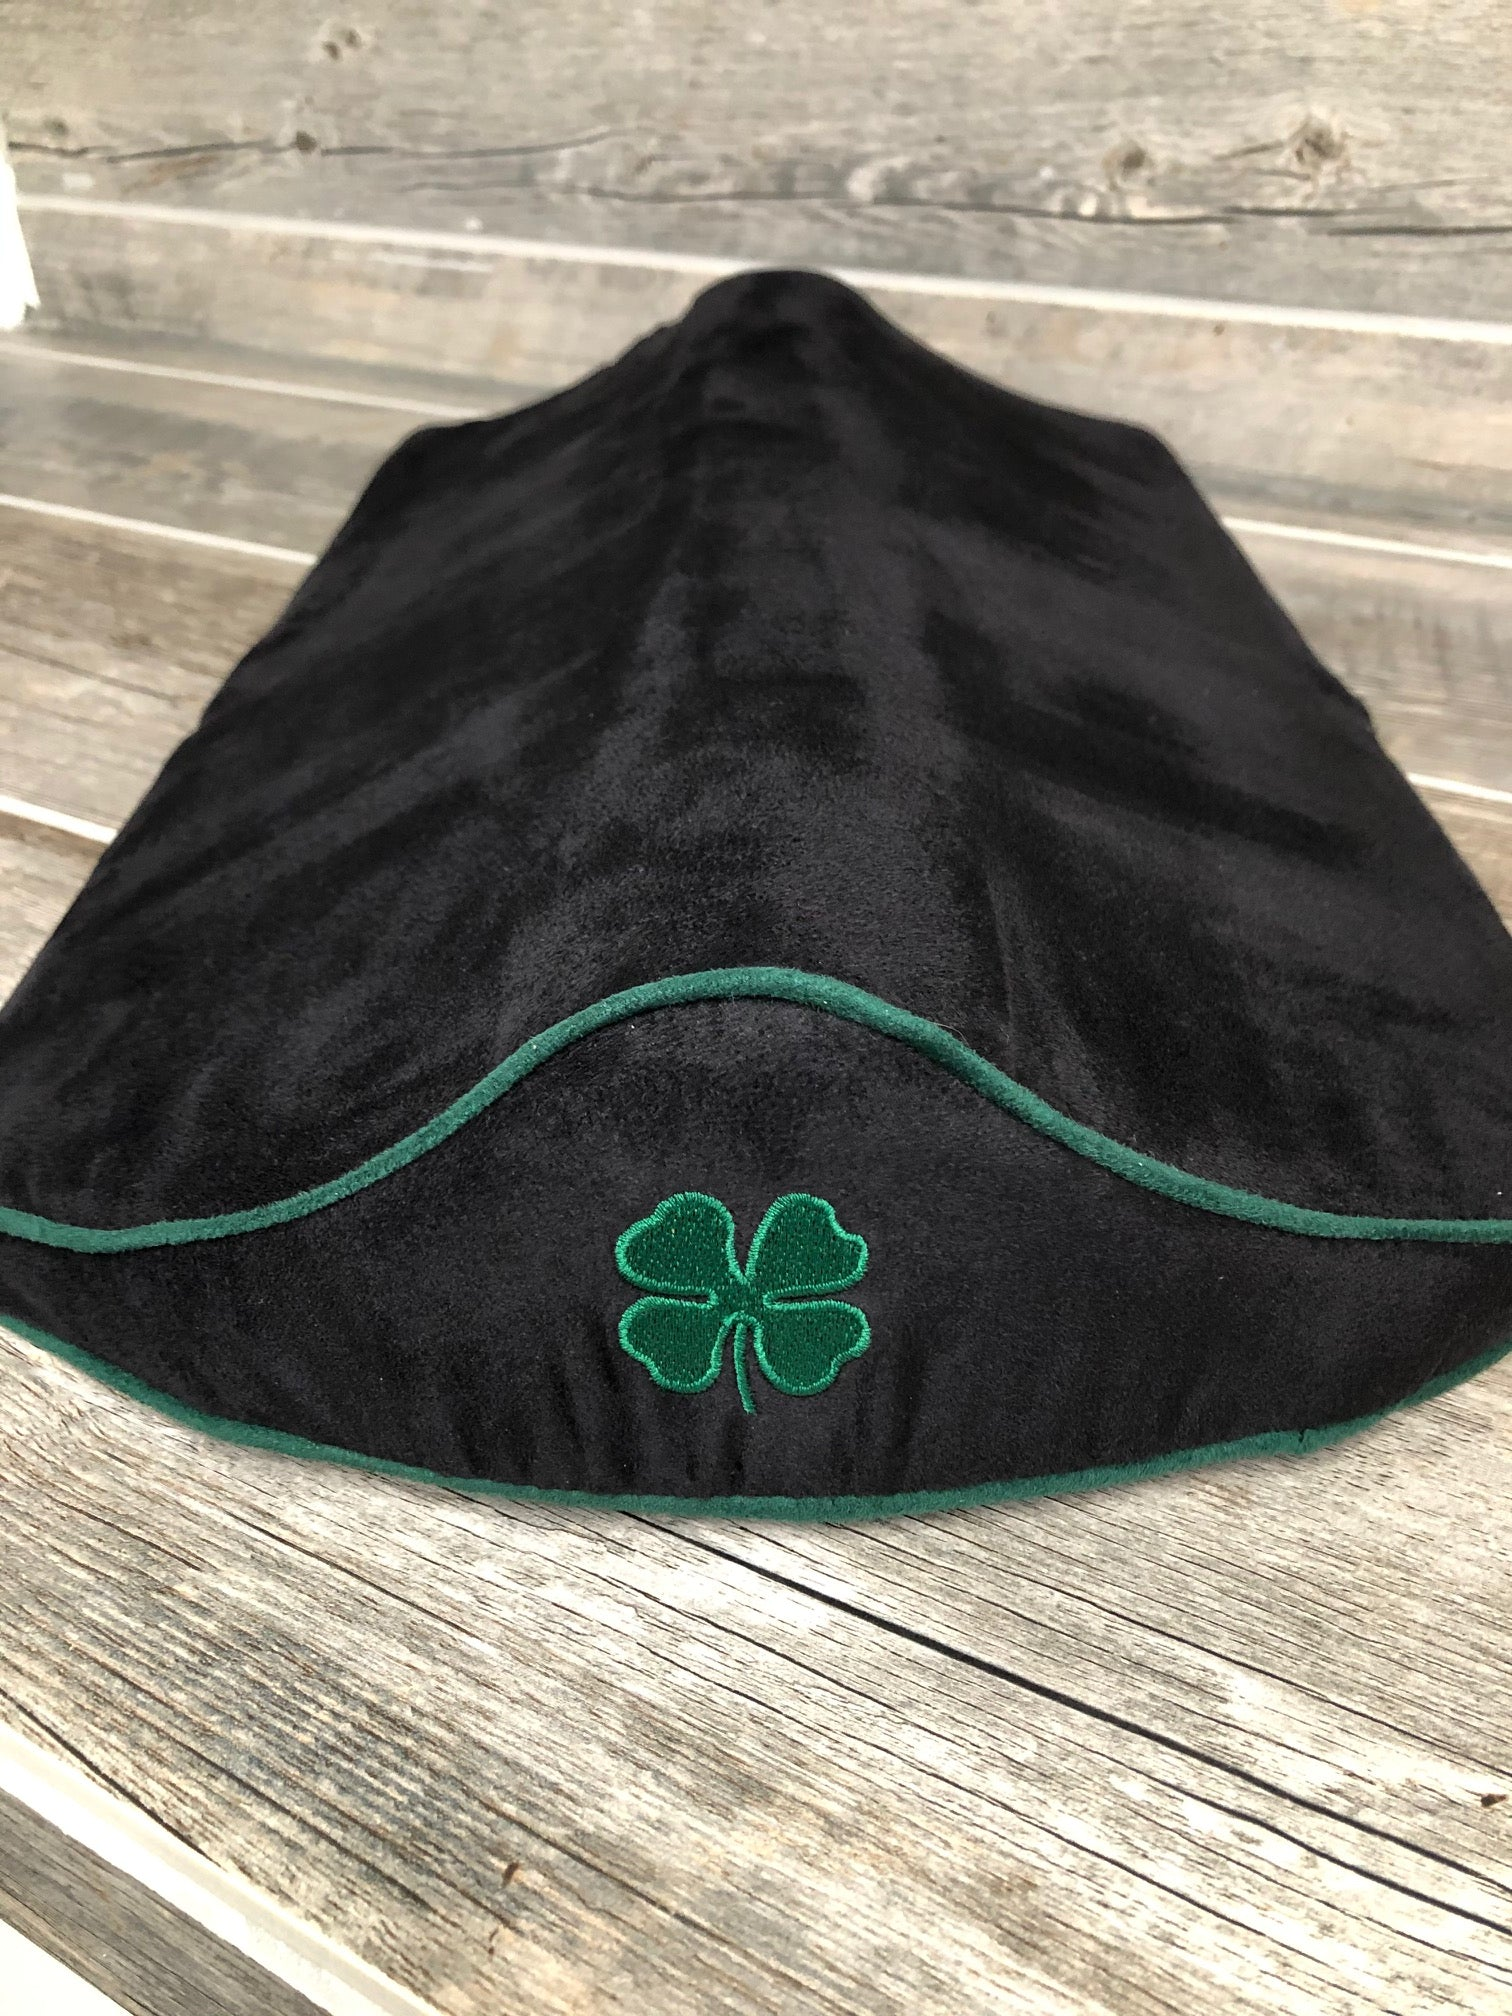 SaddleMattress Supreme Four Leaf Clover in Black